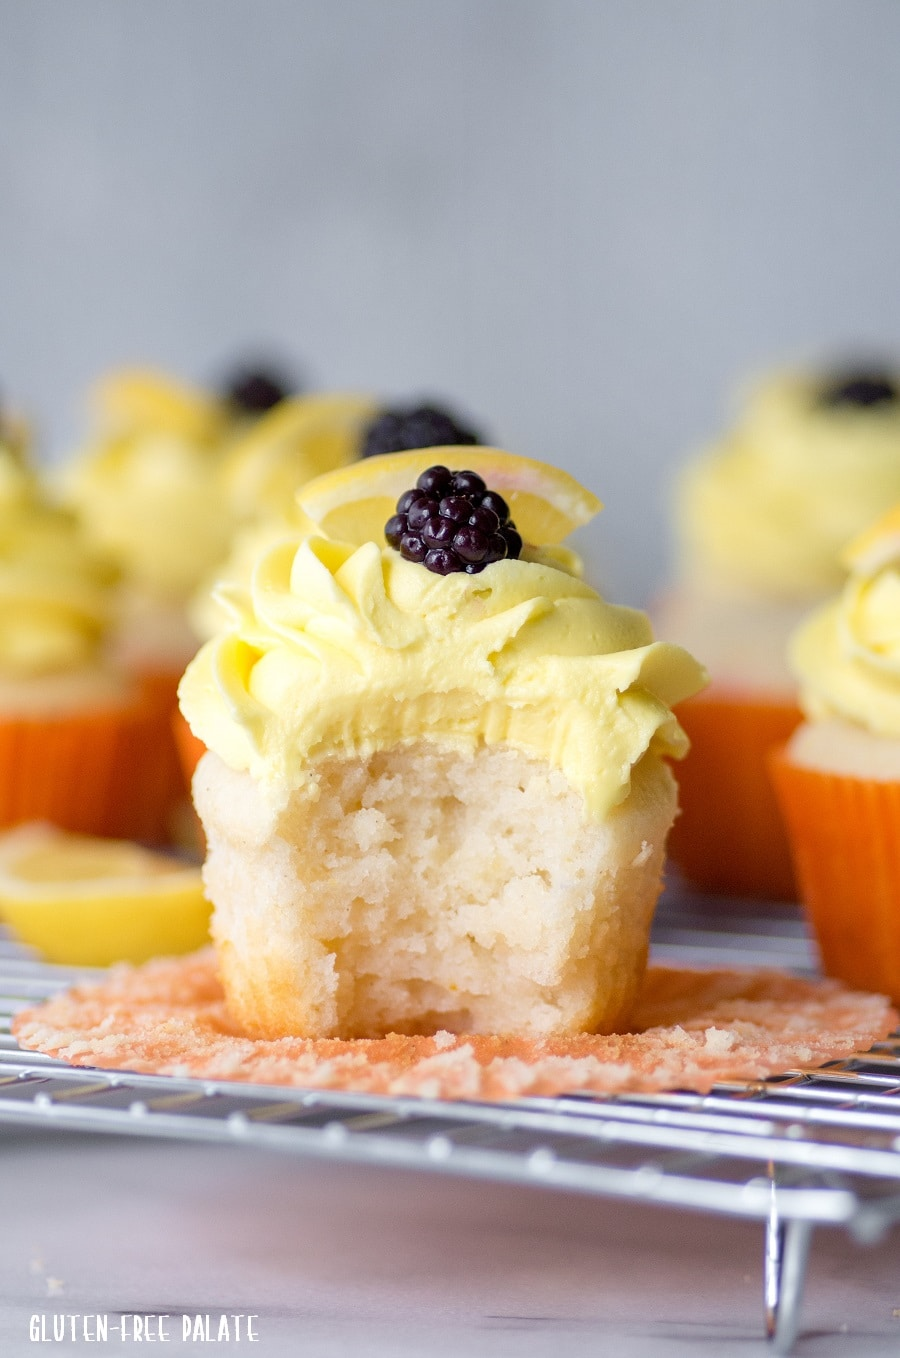 a lemon cupcake with yellow frosting and a blackberry on top, with a bite out